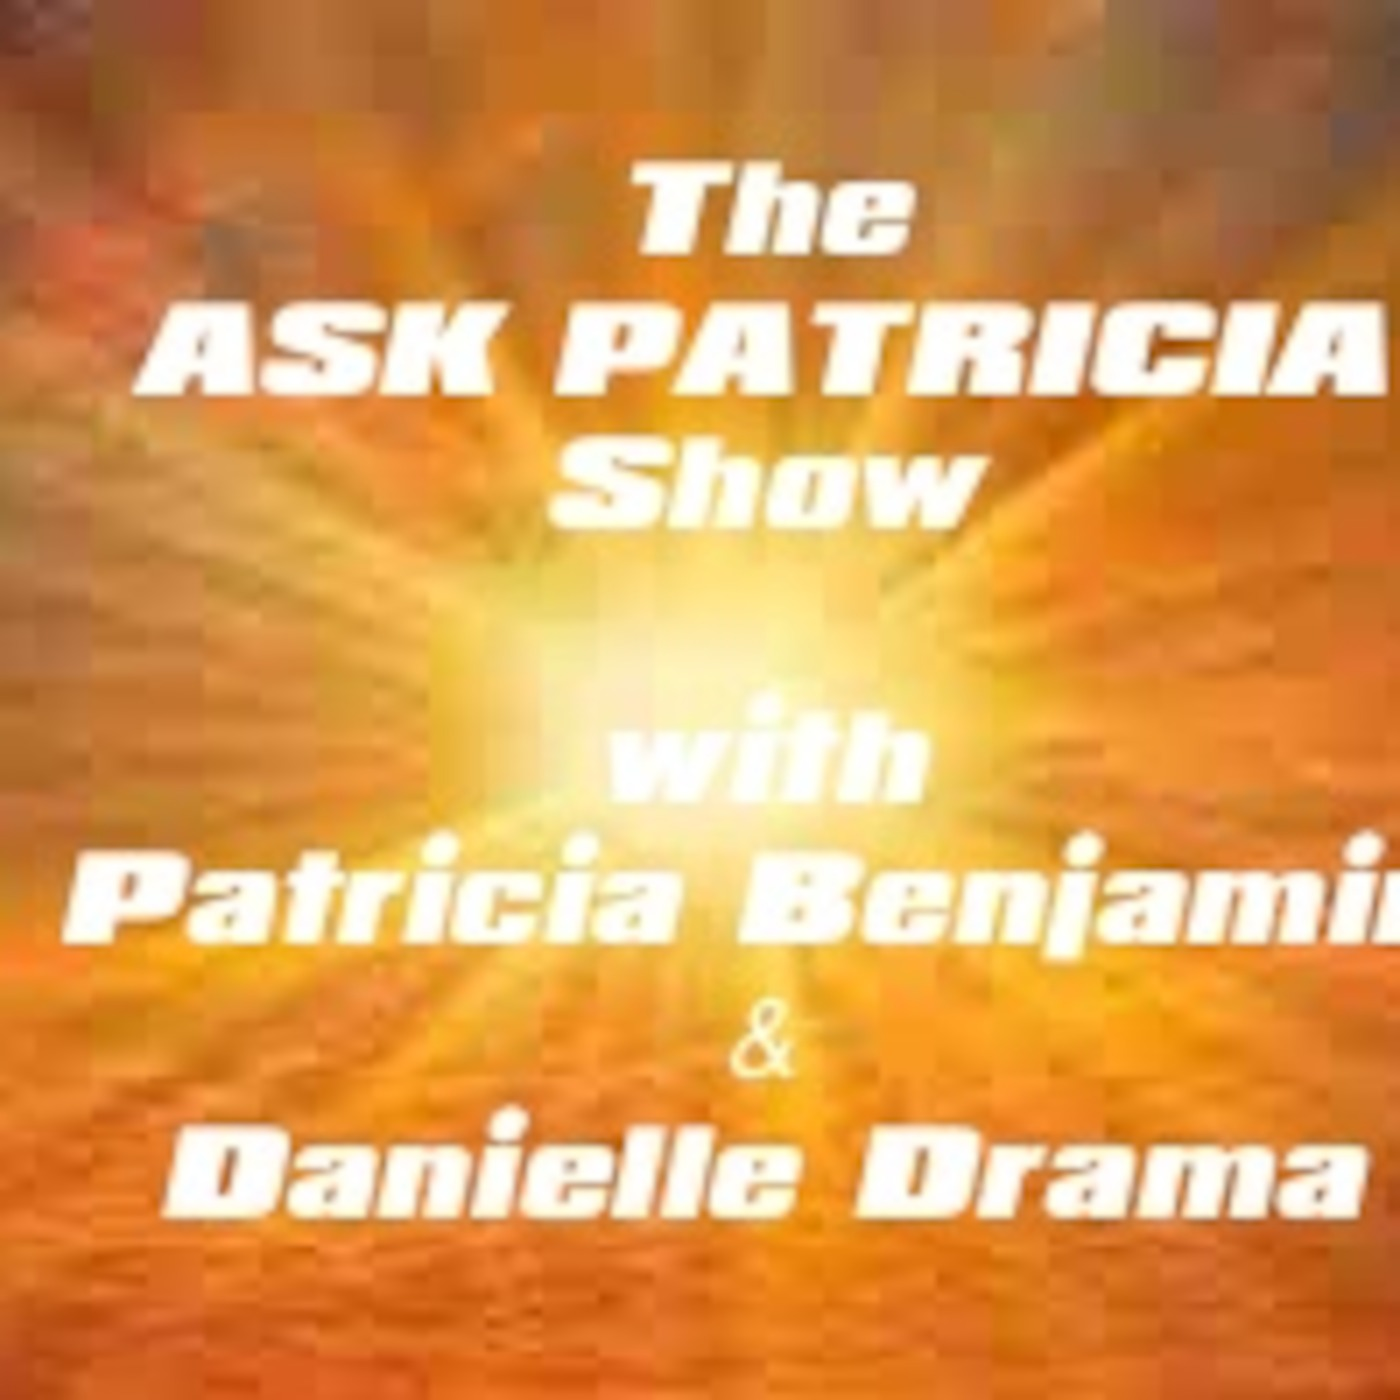 Ask Patricia Show